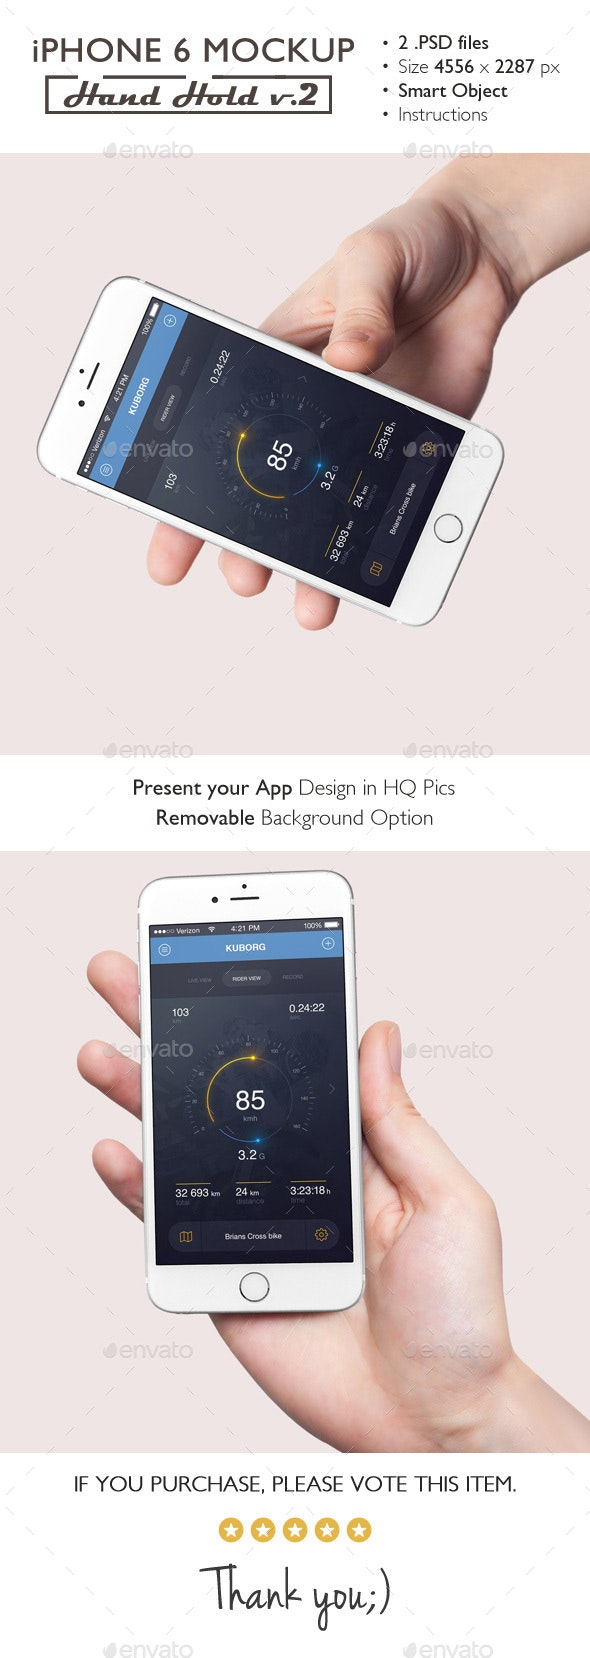 iPhone 6 Mockup Hand Hold v.2 - Mobile Displays